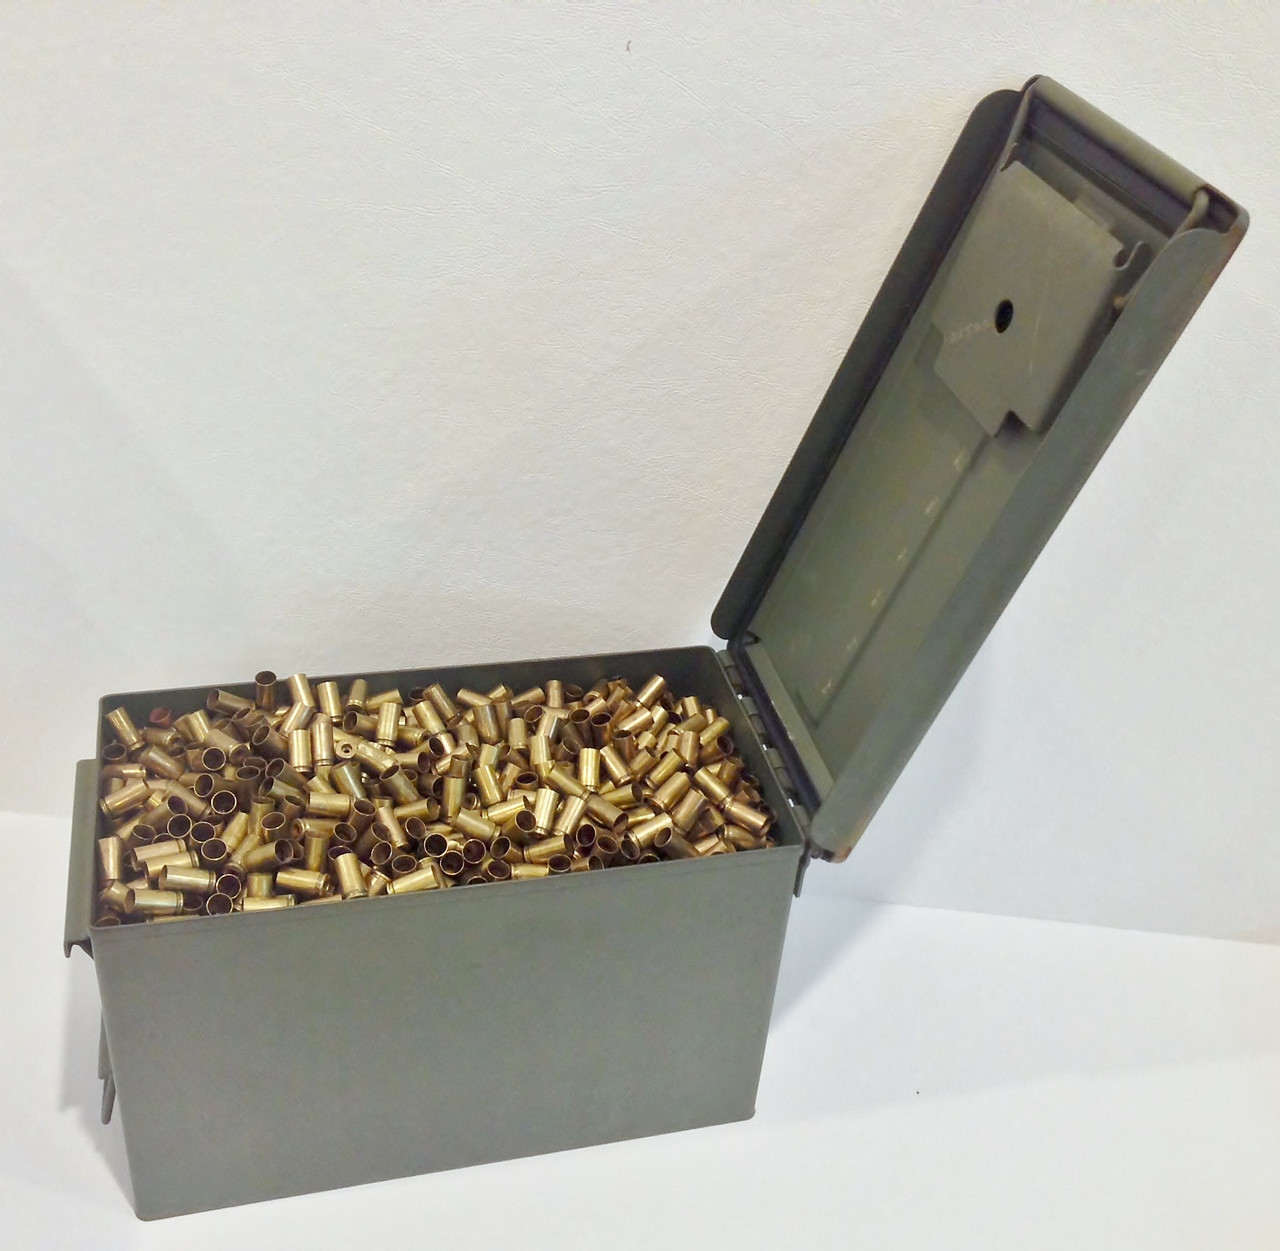 9mm Brass + M2A1 Can -- Un-Processed (~3,000 ct)